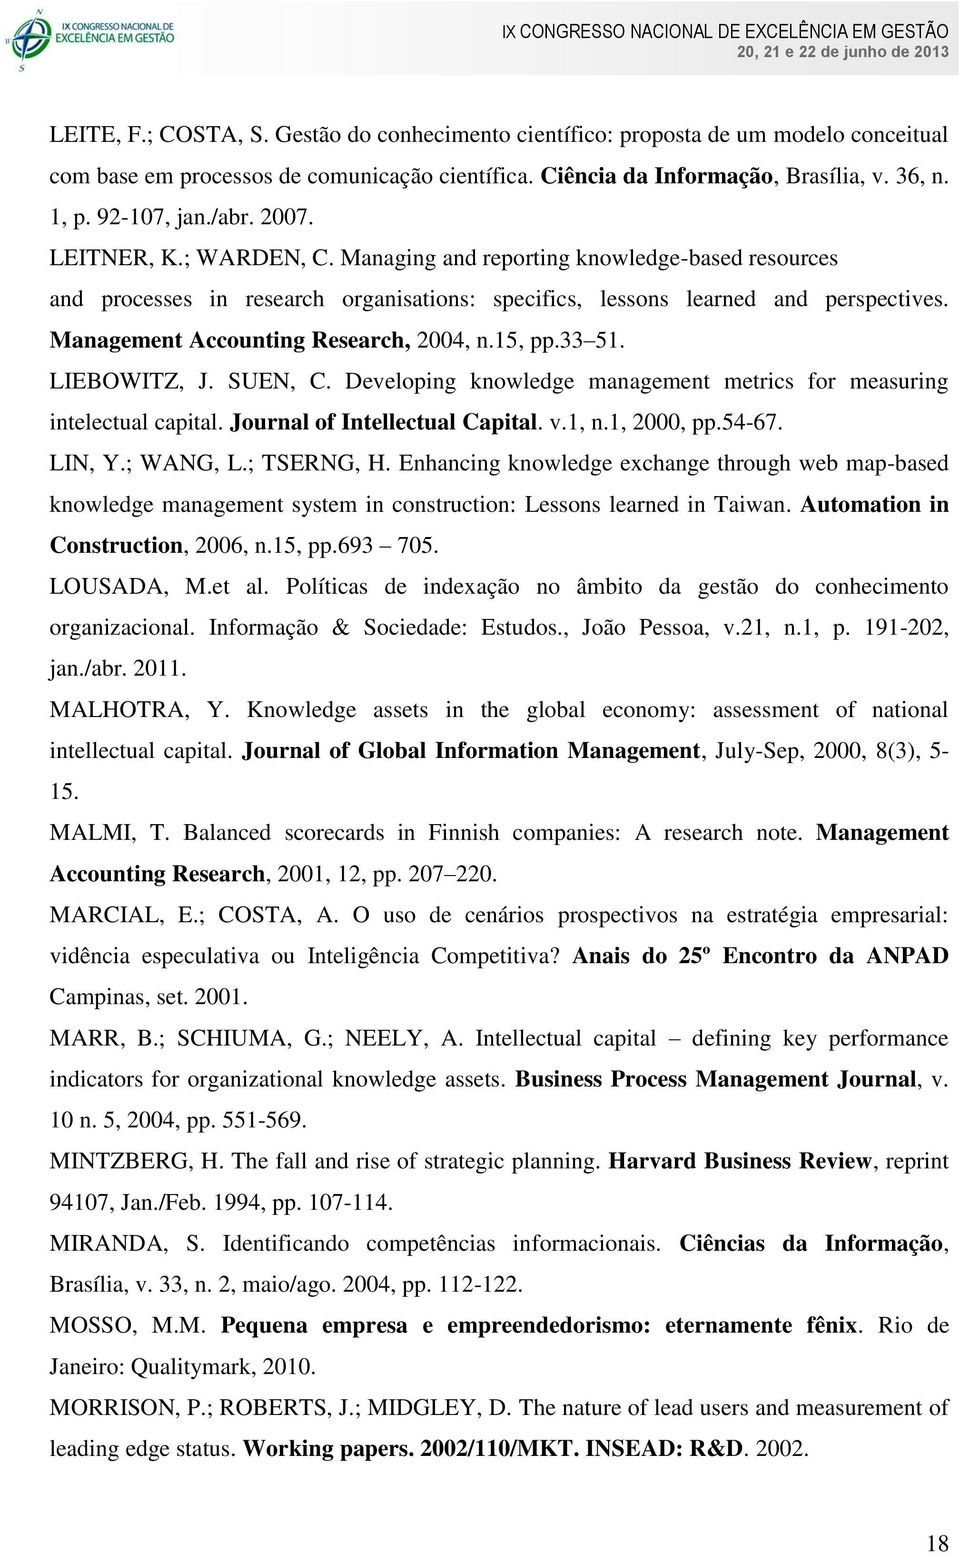 Management Accounting Research, 2004, n.15, pp.33 51. LIEBOWITZ, J. SUEN, C. Developing knowledge management metrics for measuring intelectual capital. Journal of Intellectual Capital. v.1, n.